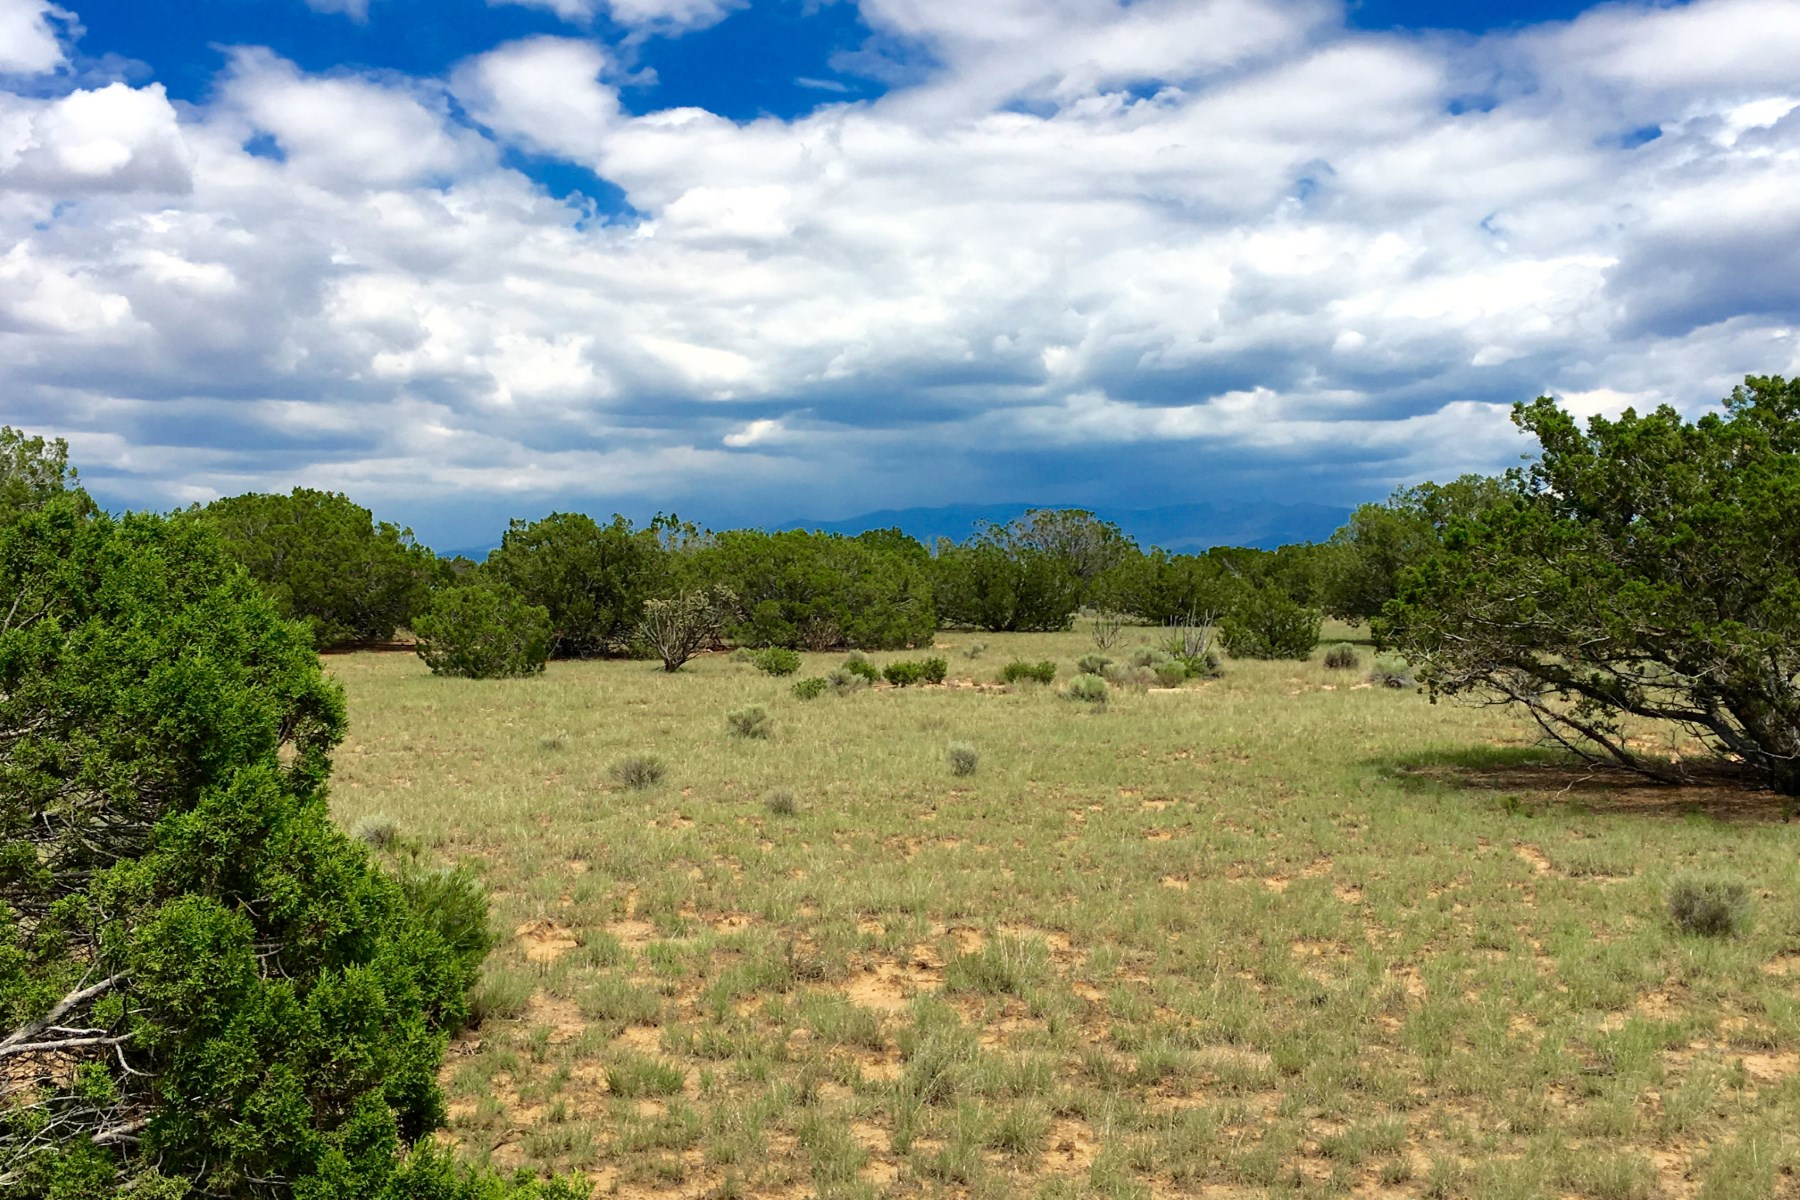 Land for Sale at 38 Entrada Descanso, Lot 869 Las Campanas & Los Santeros, Santa Fe, New Mexico, 87506 United States